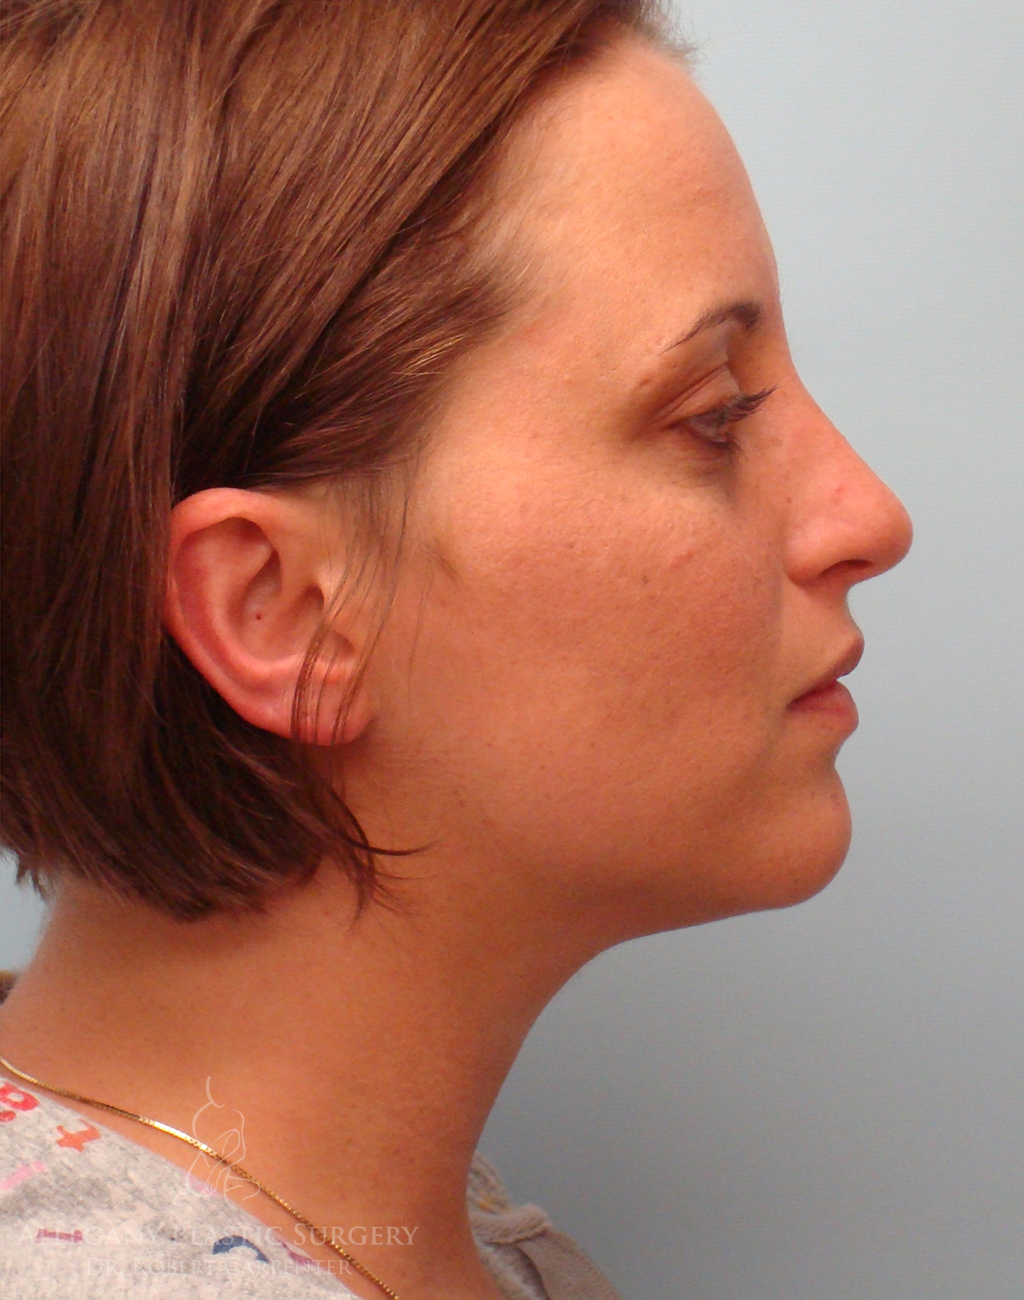 Rhinoplasty/Facial Implants Patient 2